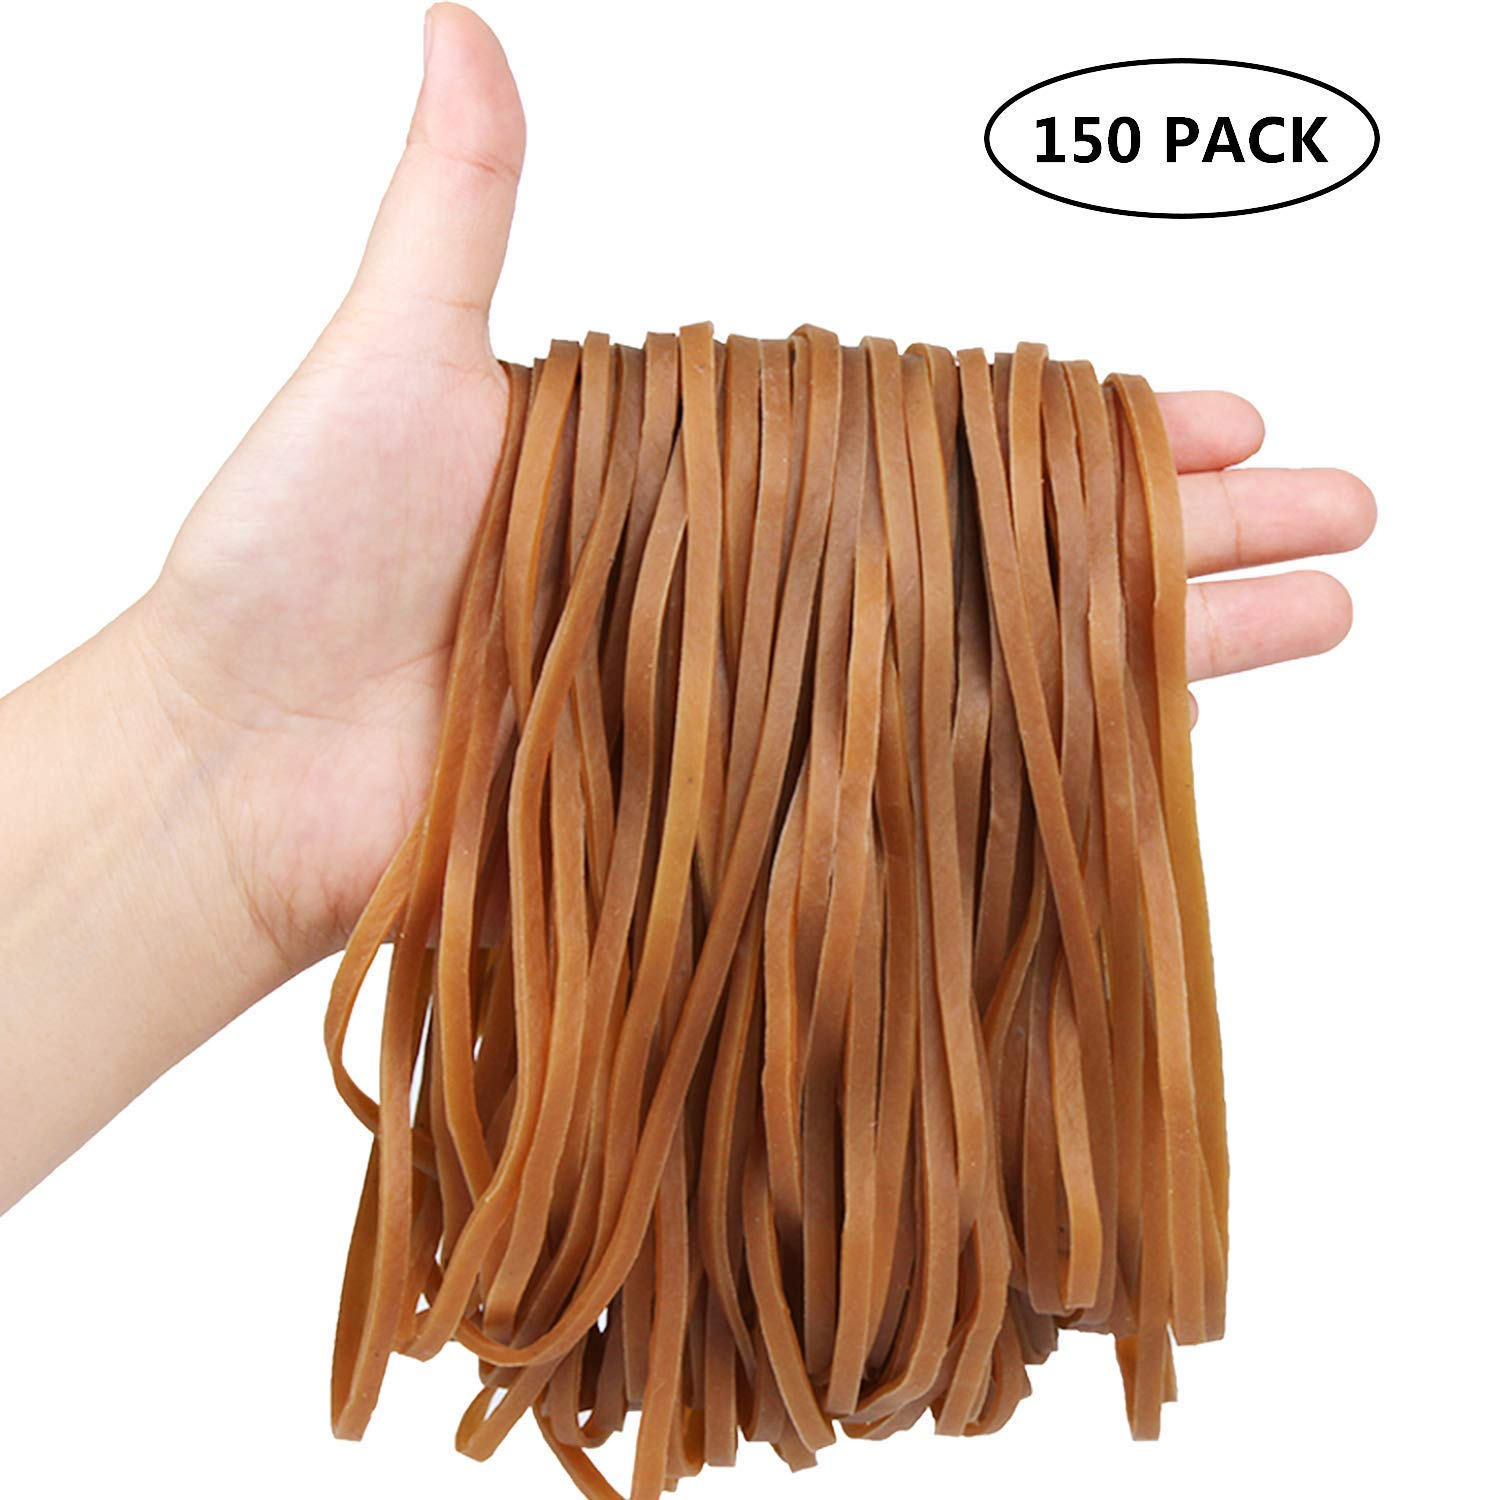 AIEX Large Thick Rubber Bands Big File Bands Elastic Heavy Duty Rubber Bands for Trash Can School,Home or Office 15.7 Inches Stretched Length, 60 Pack